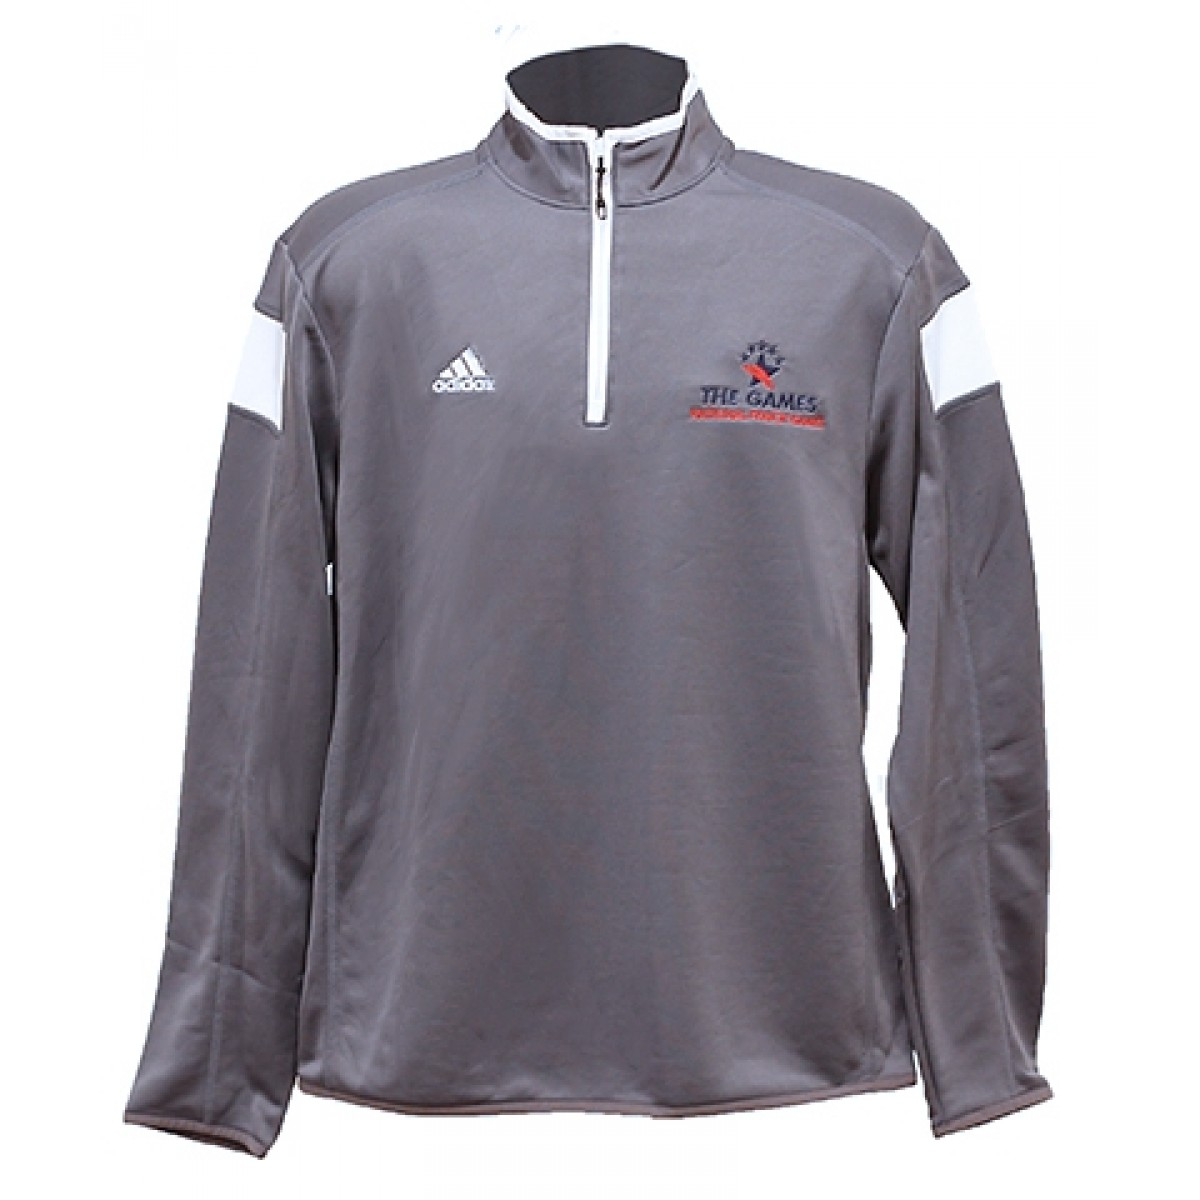 Adidas 1/4 Zip Pullover w/ Embroidered Logo